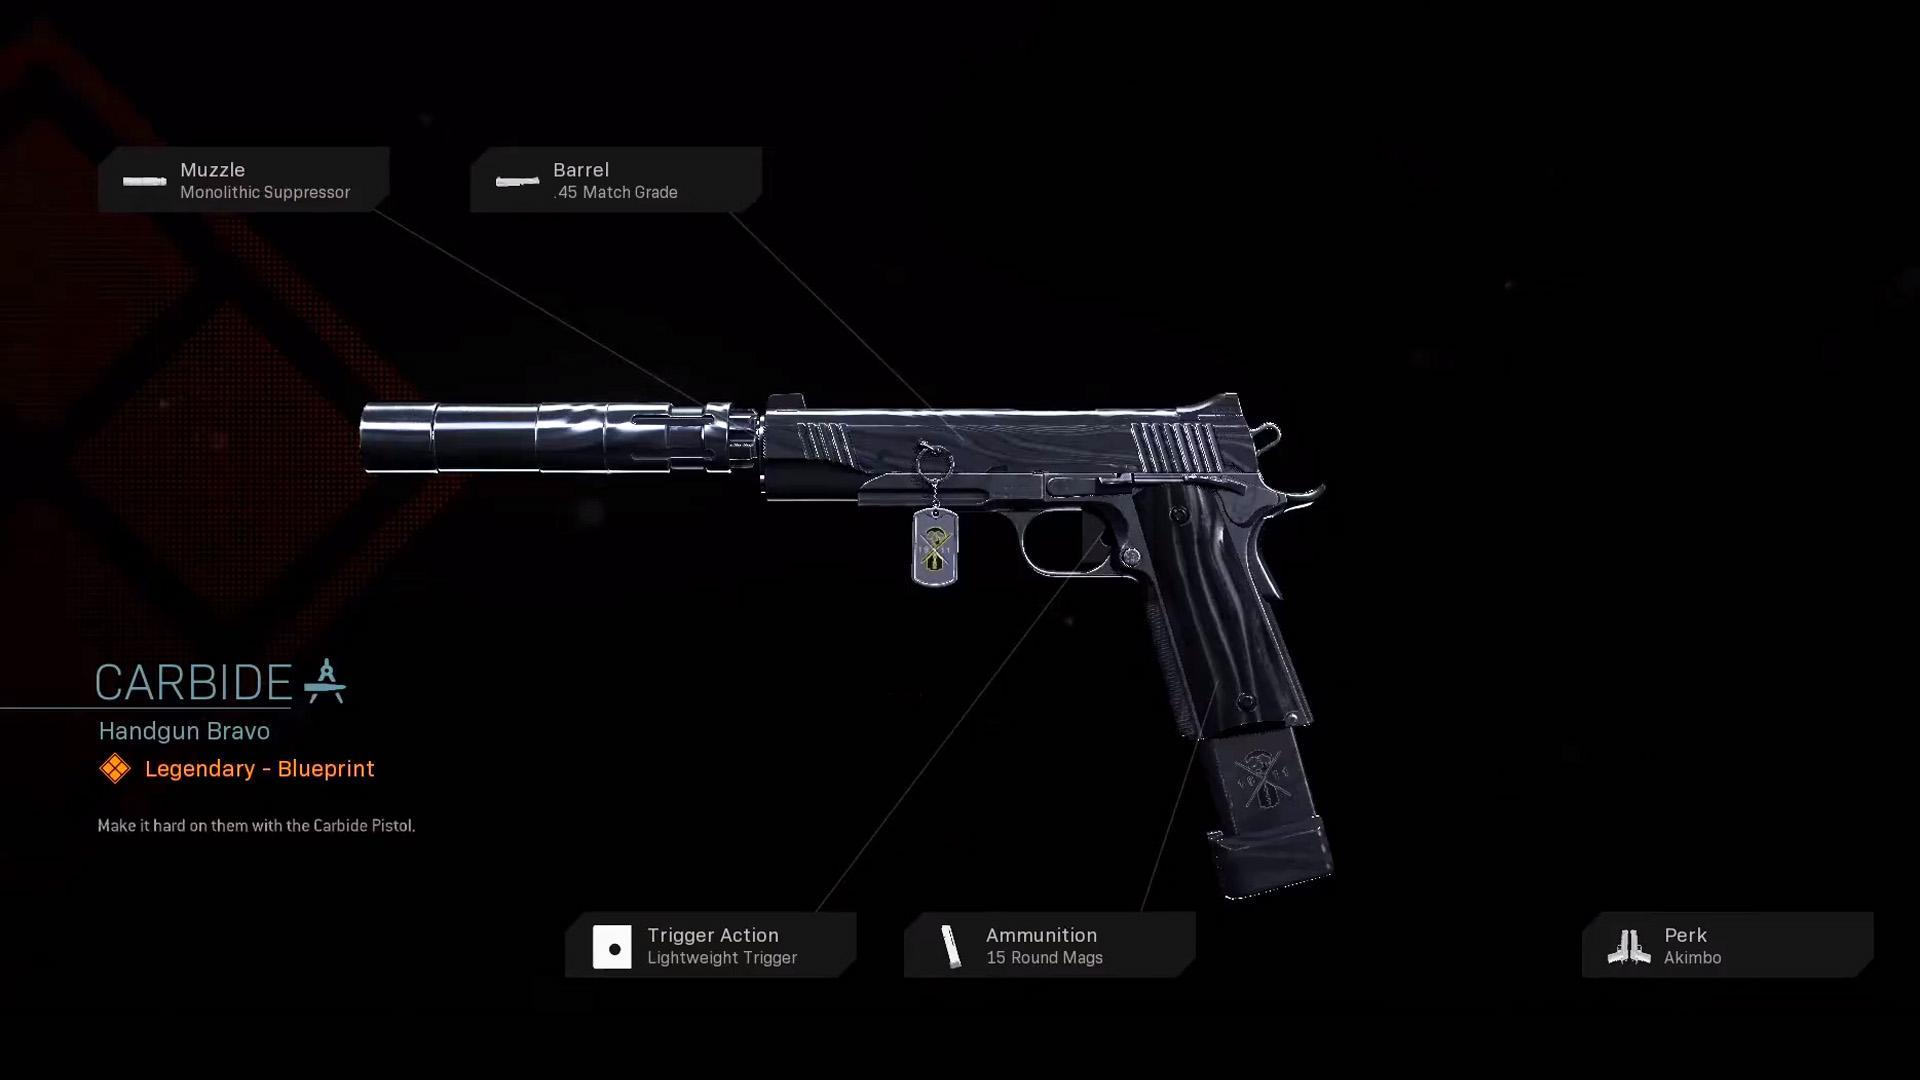 Carbide Cod Warzone Weapons Legendary Blueprint Call Of Duty Modern Warfare